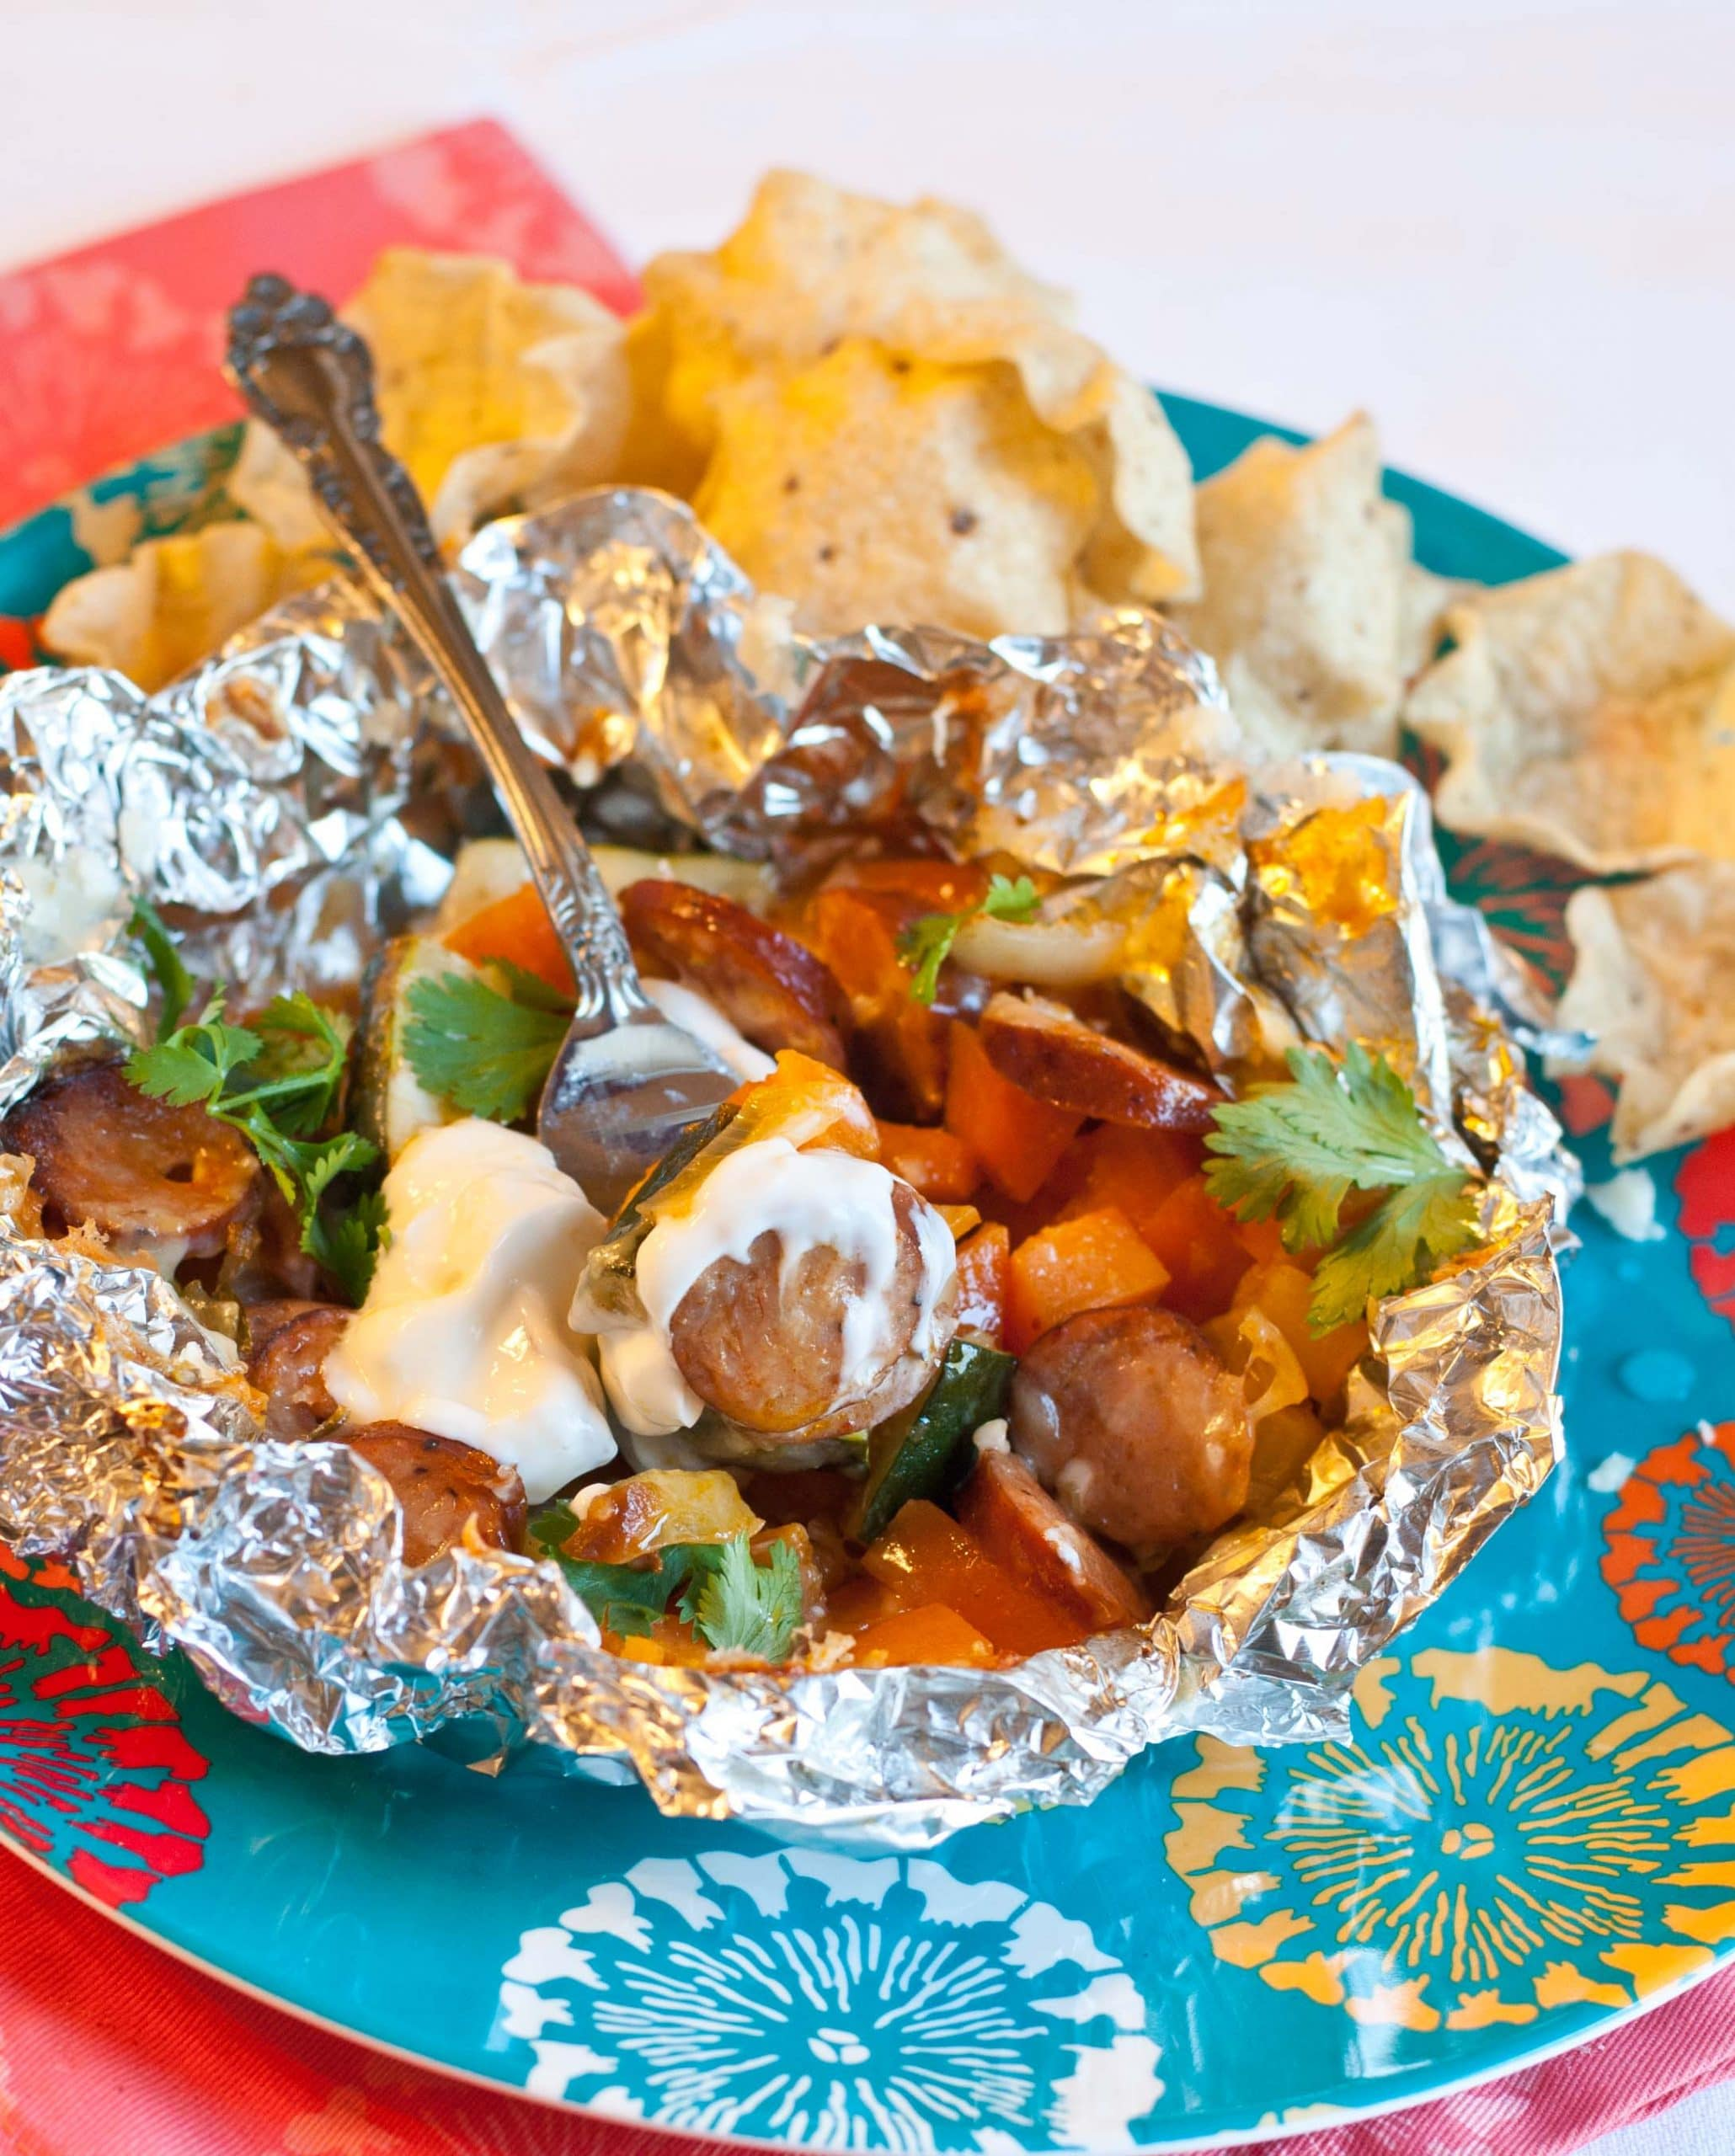 Grilled Chipotle Sweet Potato and Chicken Sausage Foil Packets | Neighborfoodblog.com